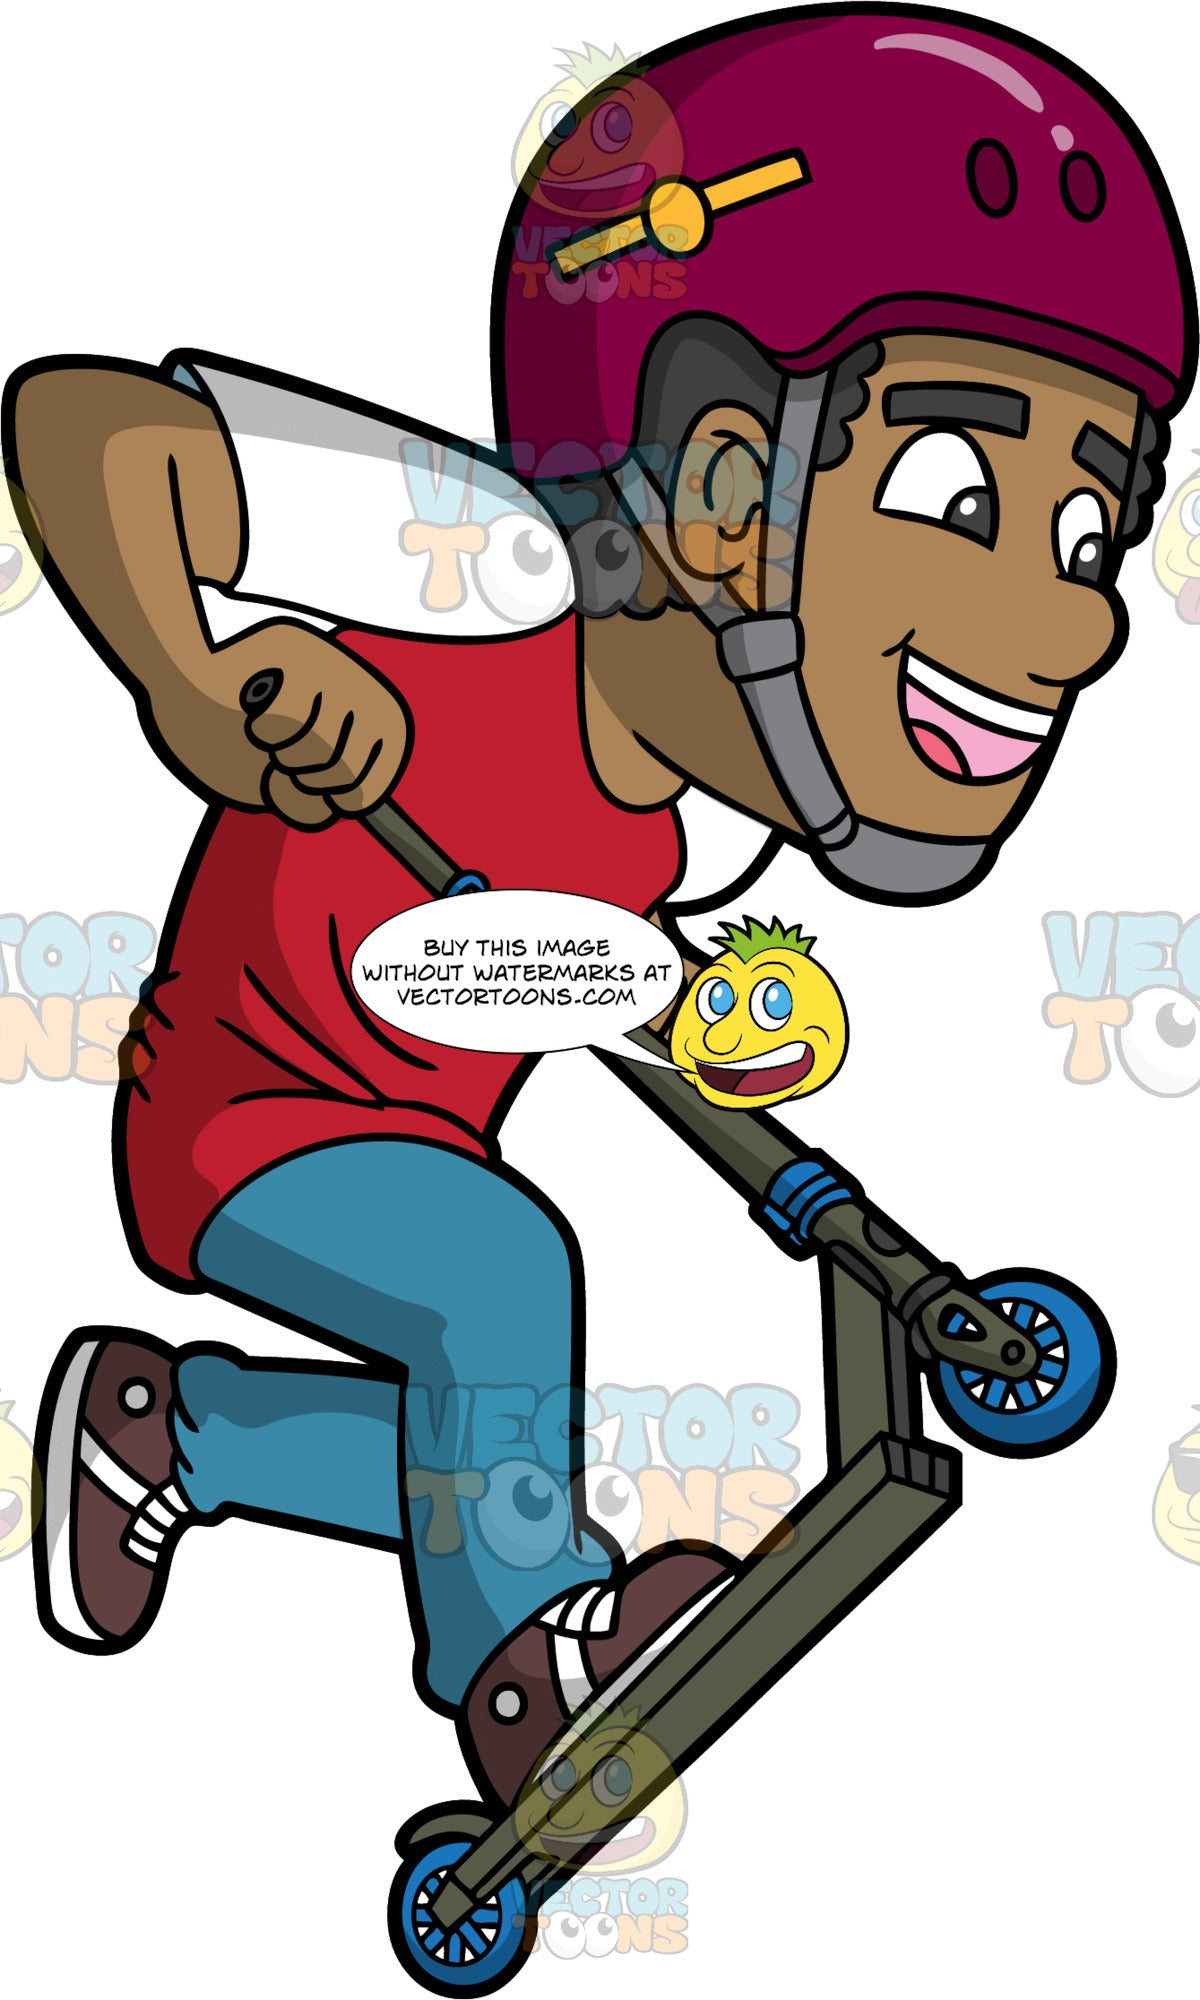 A Happy Black Man Riding A Scooter. A black man with curly hair, wearing a red with white shirt, teal pants, brown with white shoes, fuchsia with yellow helmet and gray strap, smiles in delight while pulling up the dark green scooter with blue wheels that he is riding